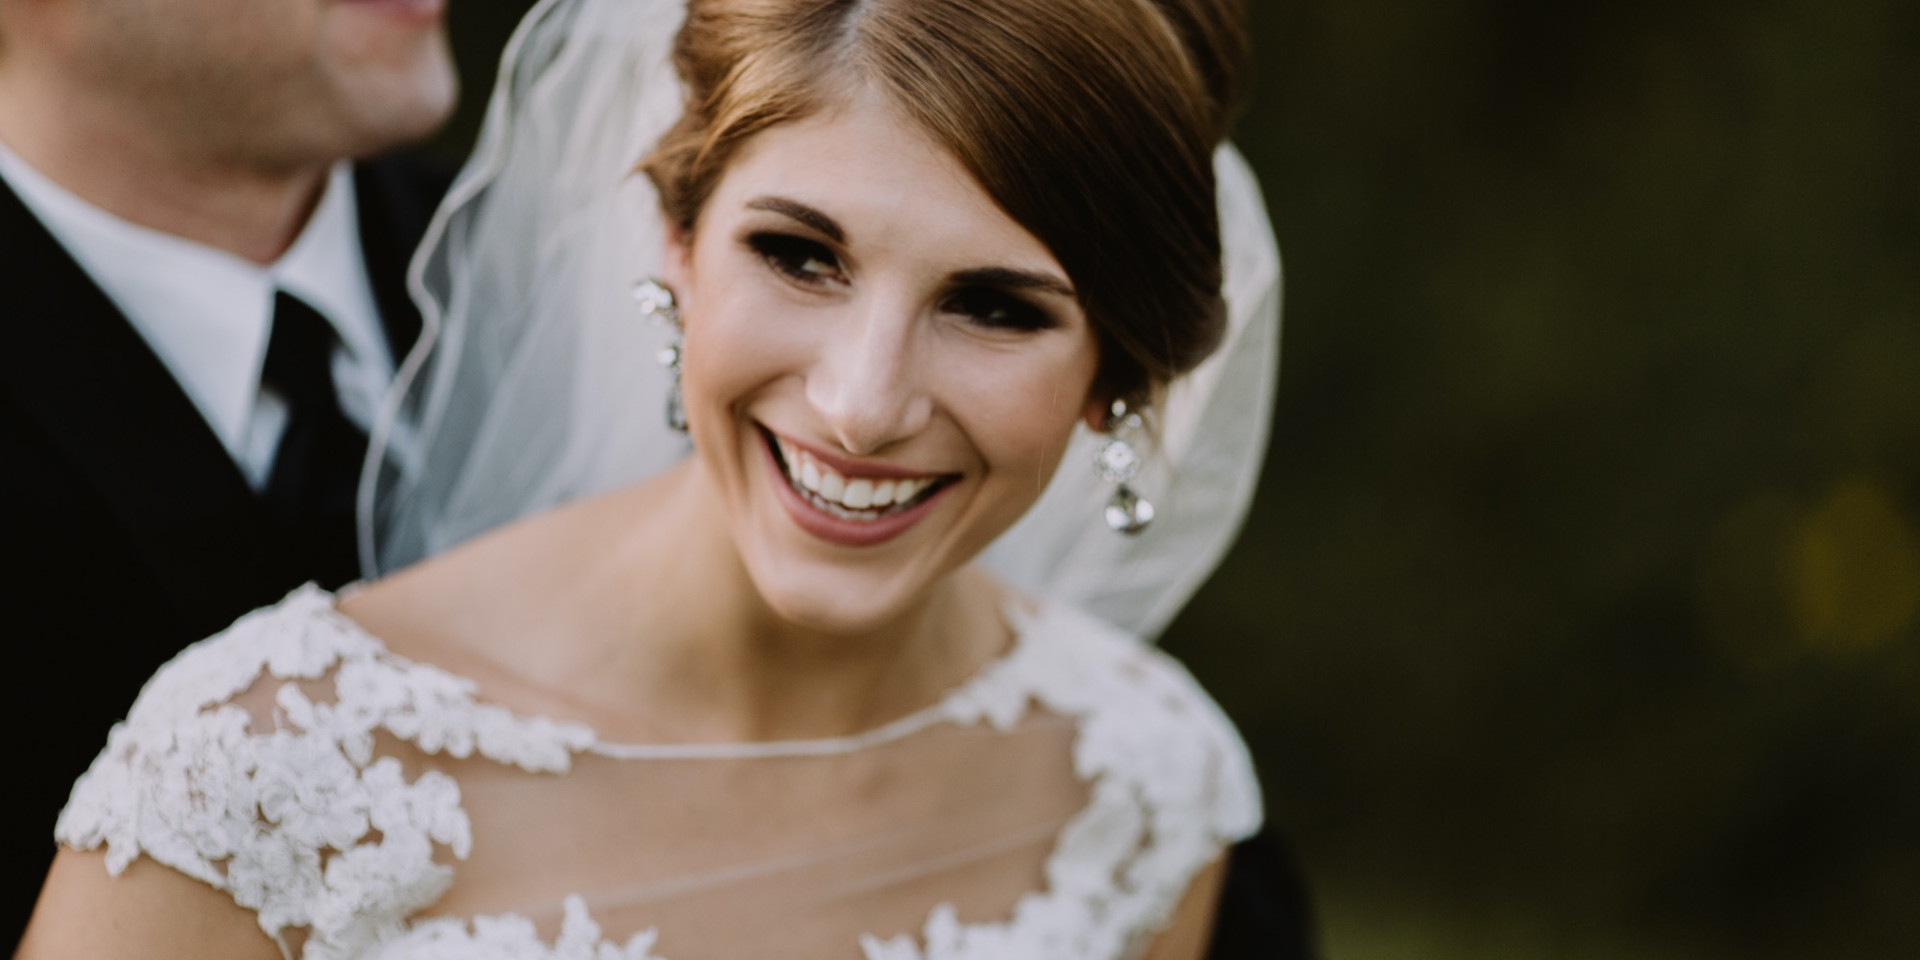 Airbrush makeup for a Baton Rouge Bride